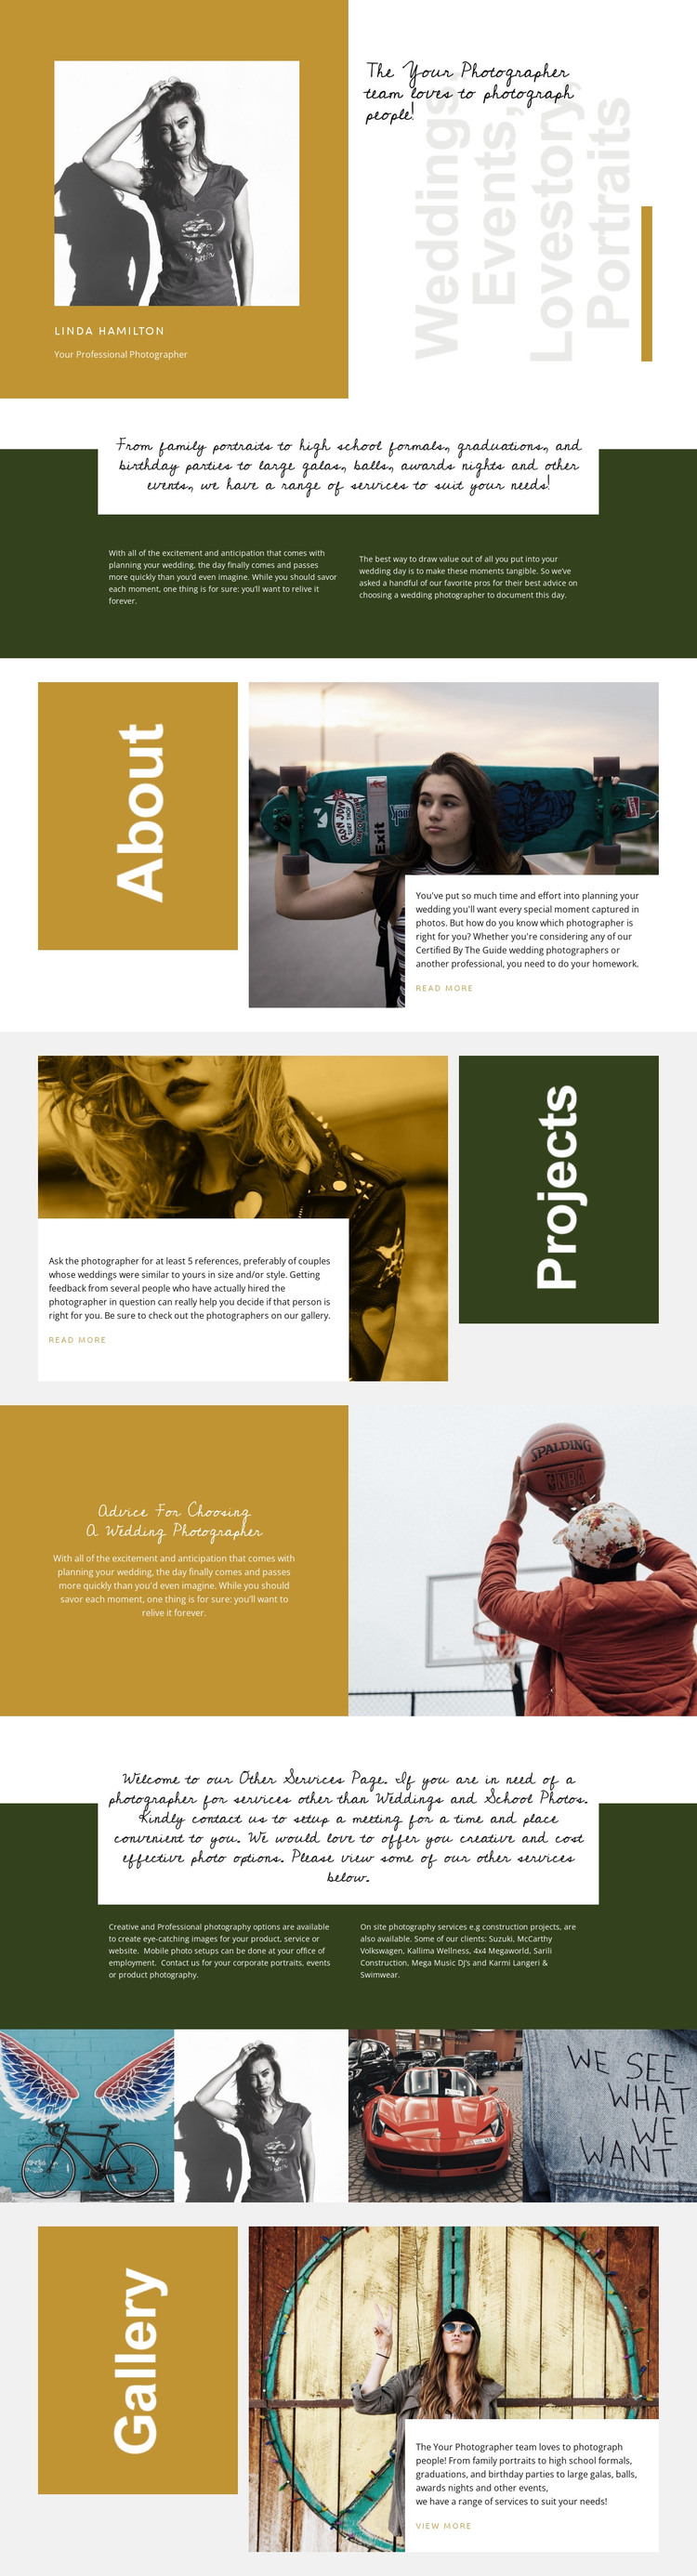 Fashion photography courses HTML Template